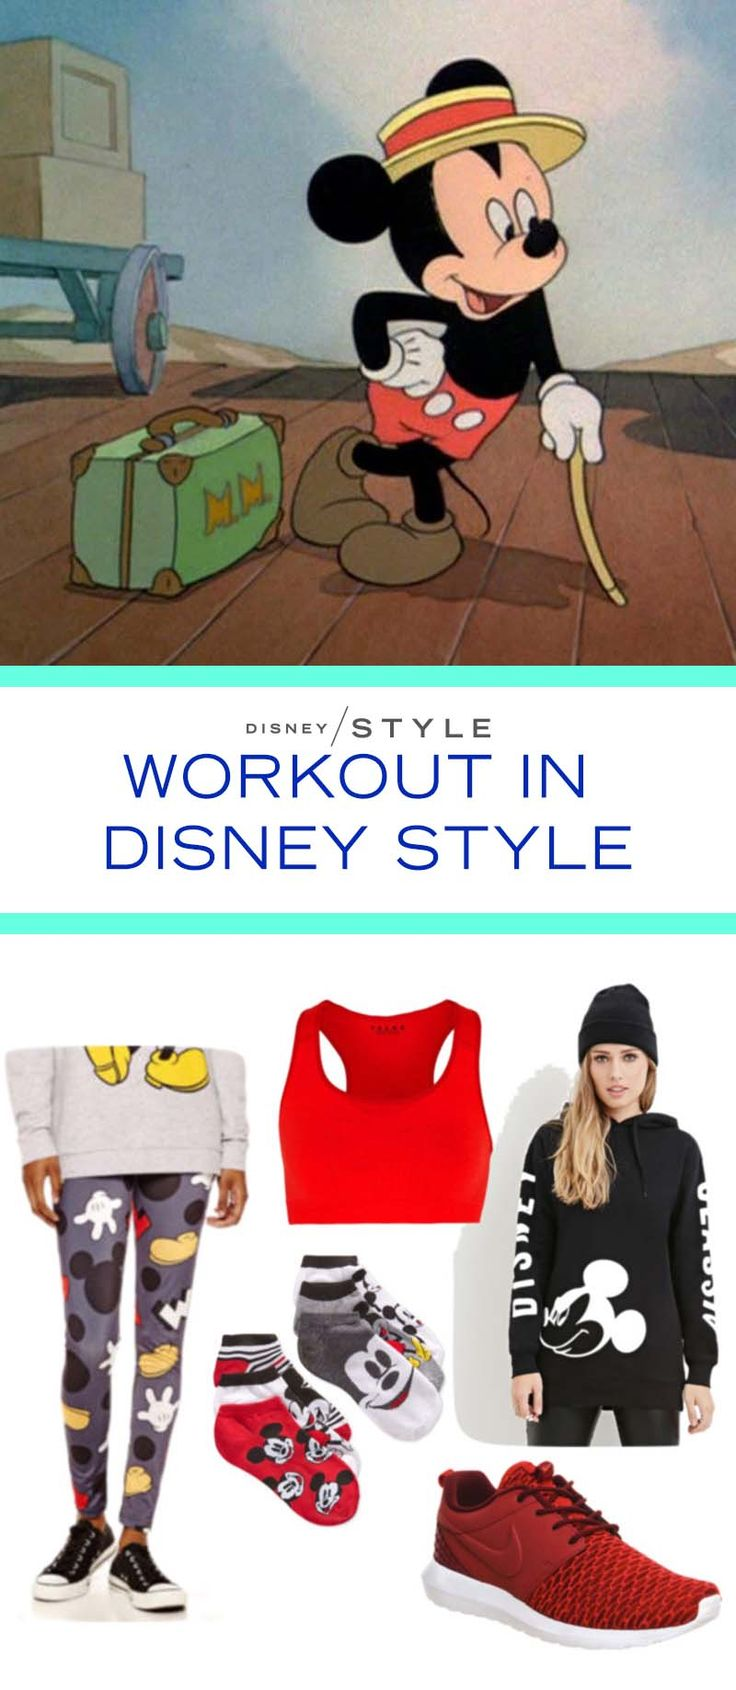 Workout in Disney style! These Mickey leggings are sure to get enough compliments to get your workout going. And after the gym, you can throw on a solid sweatshirt and rock this look all day. ---   http://tipsalud.com   -----